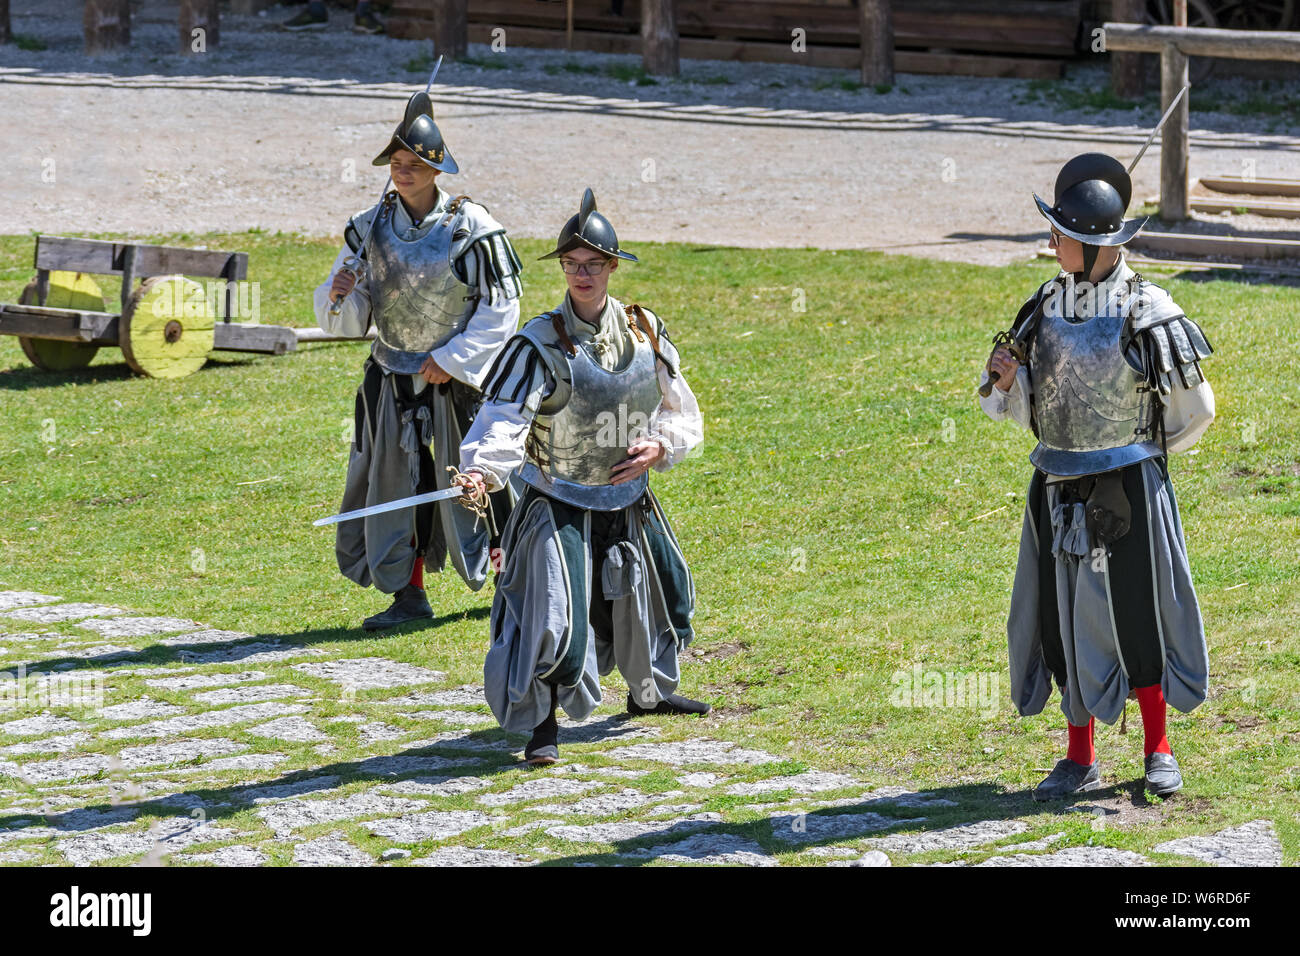 Rakvere, Estonia, June 28: A cuirassier squad staged a show in the courtyard of an old castle in Rakvere, June 28, 2019. Stock Photo